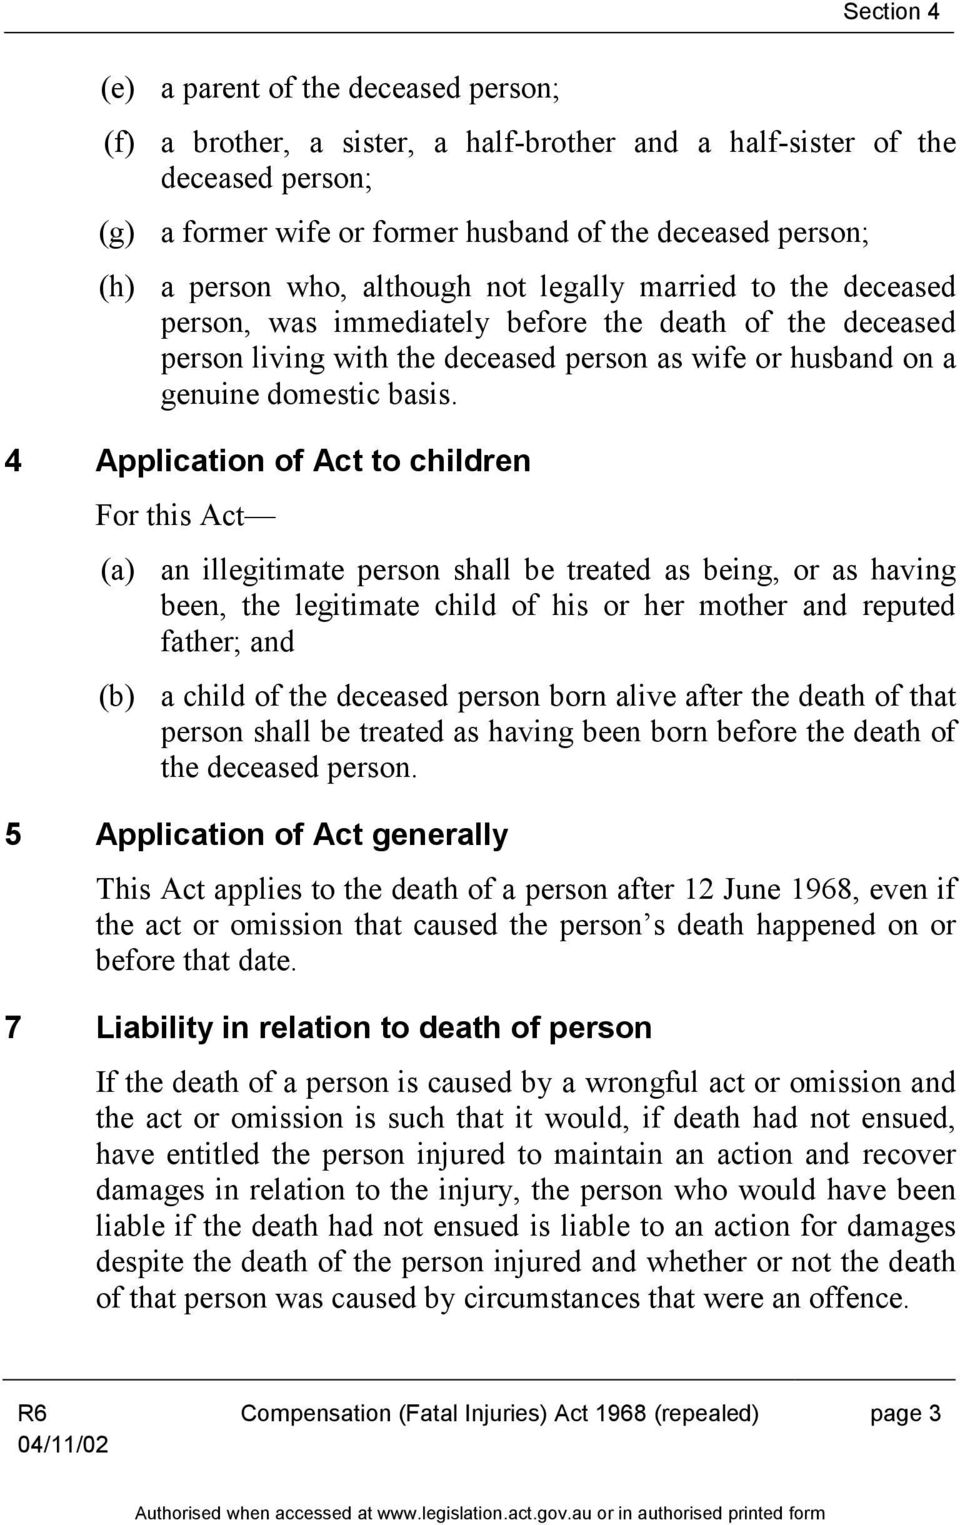 4 Application of Act to children For this Act (a) (b) an illegitimate person shall be treated as being, or as having been, the legitimate child of his or her mother and reputed father; and a child of